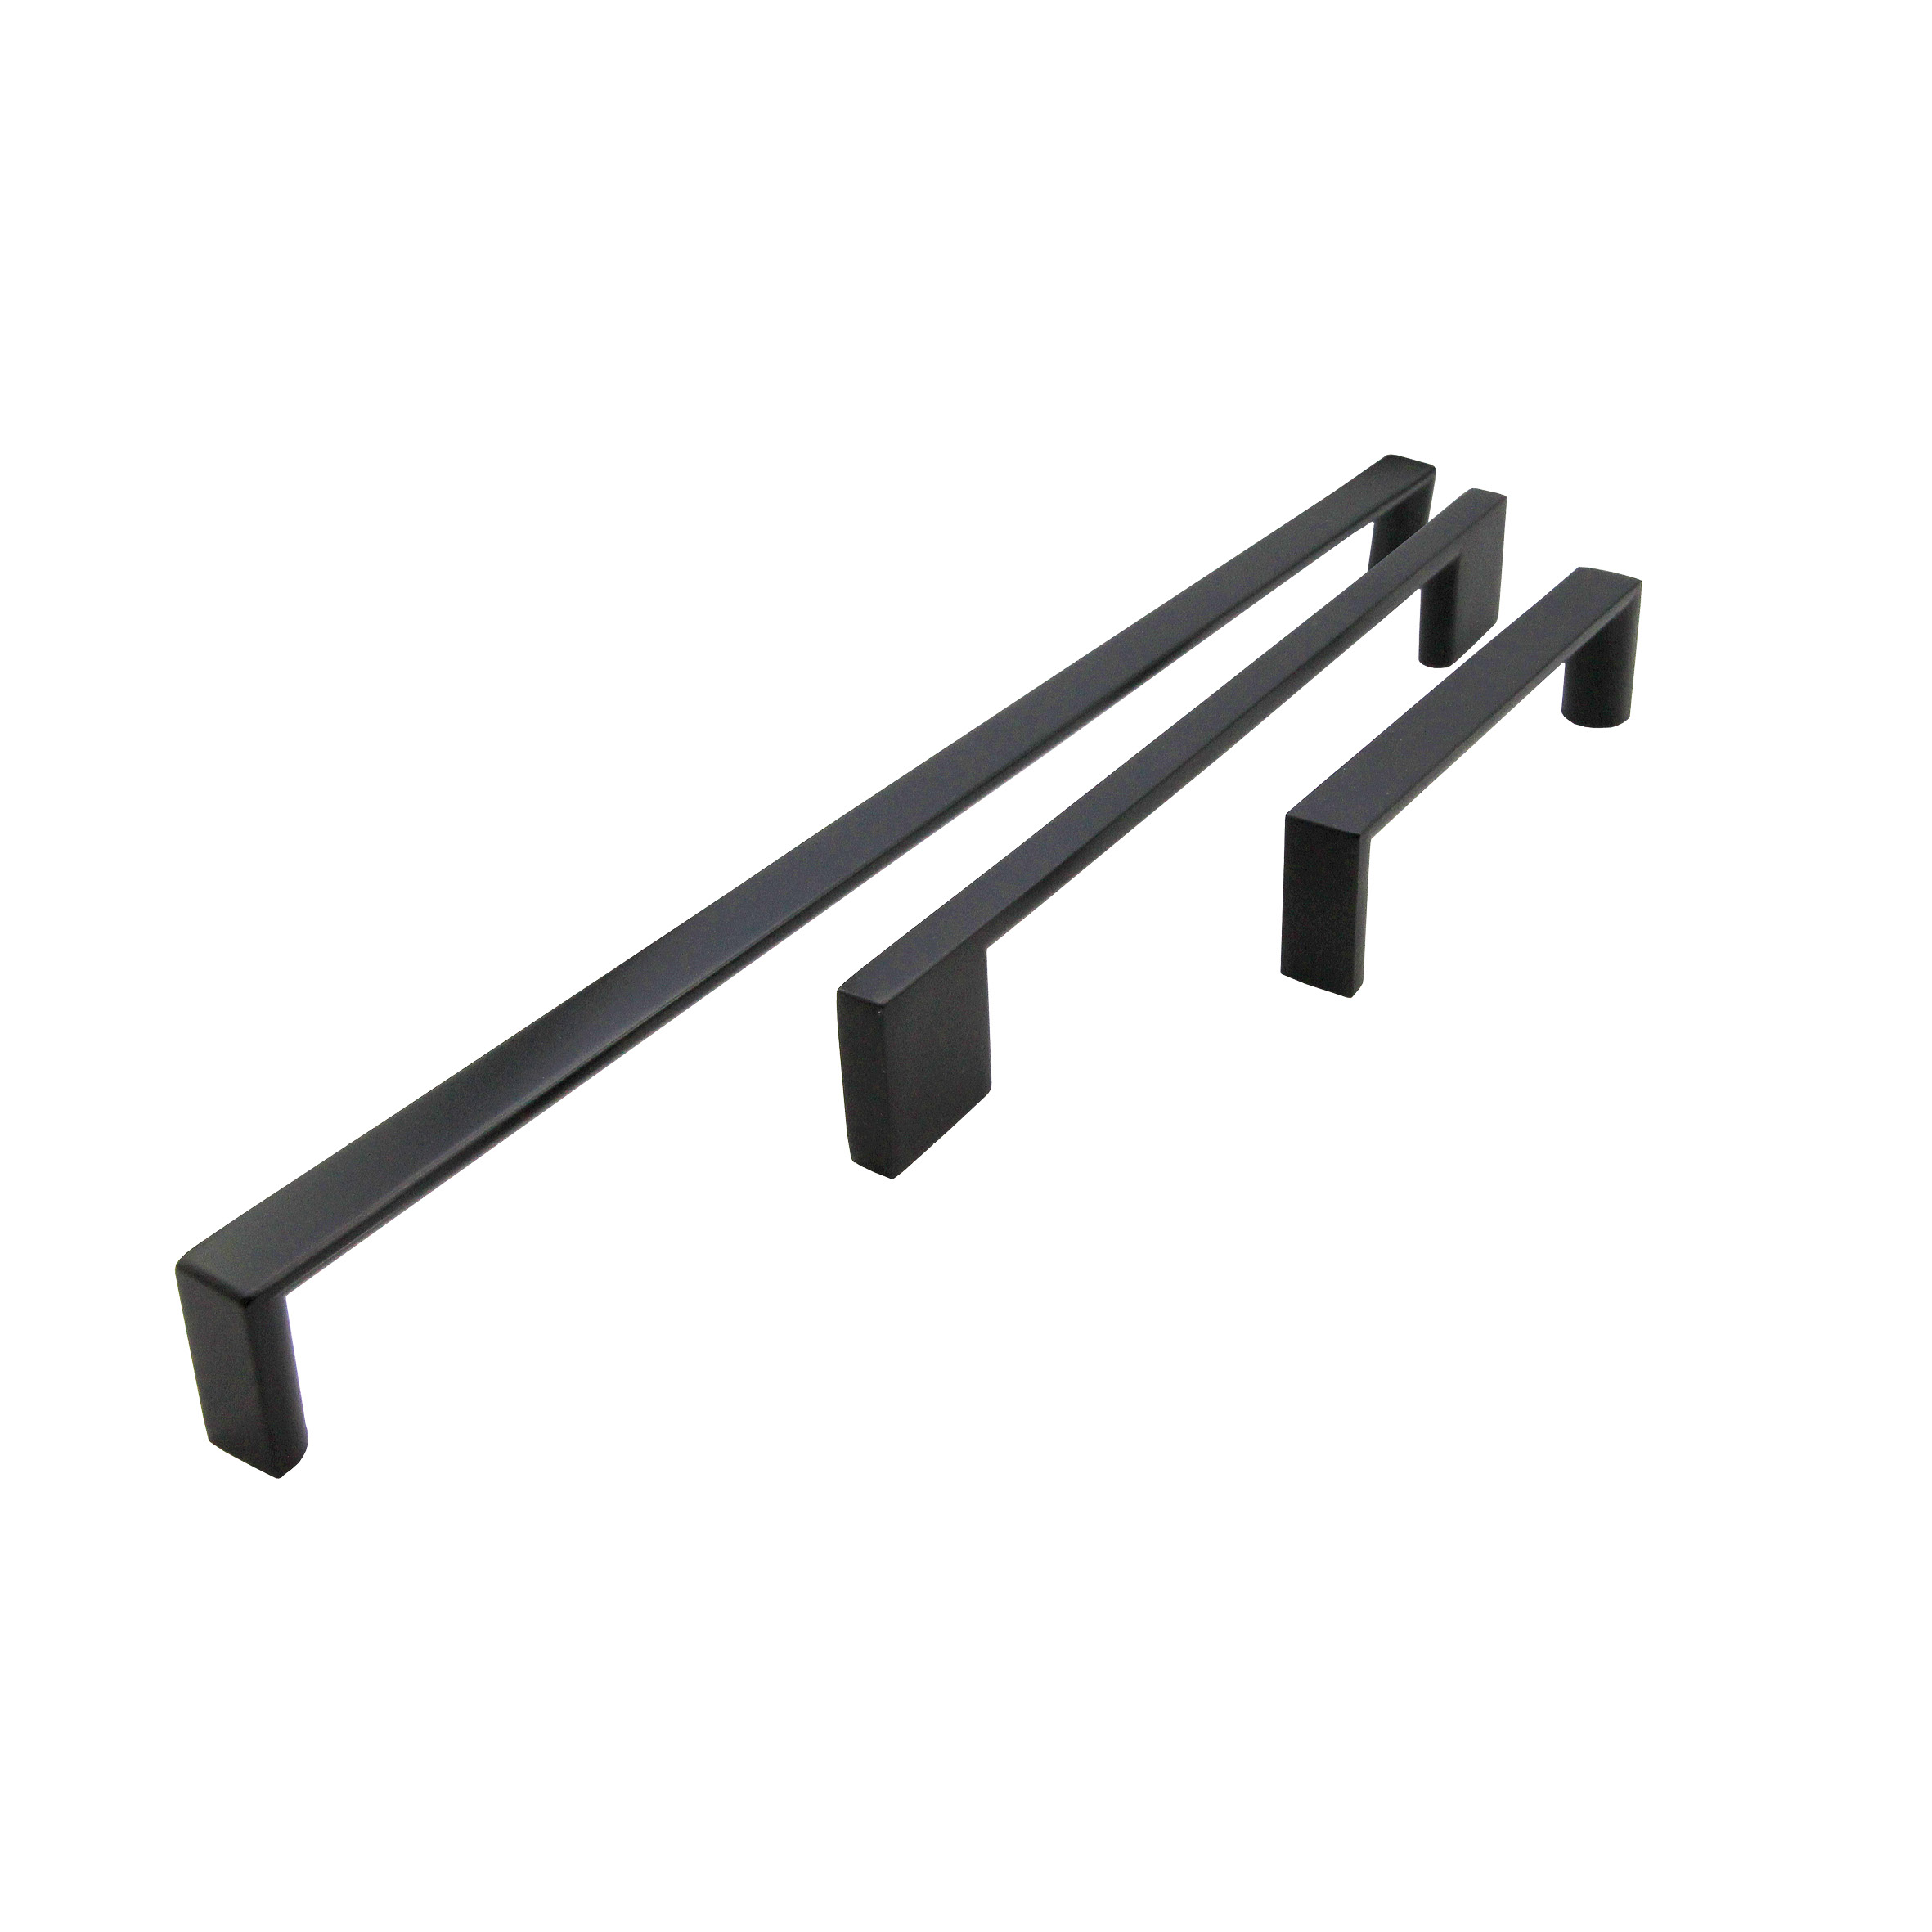 CABINETRY HANDLES